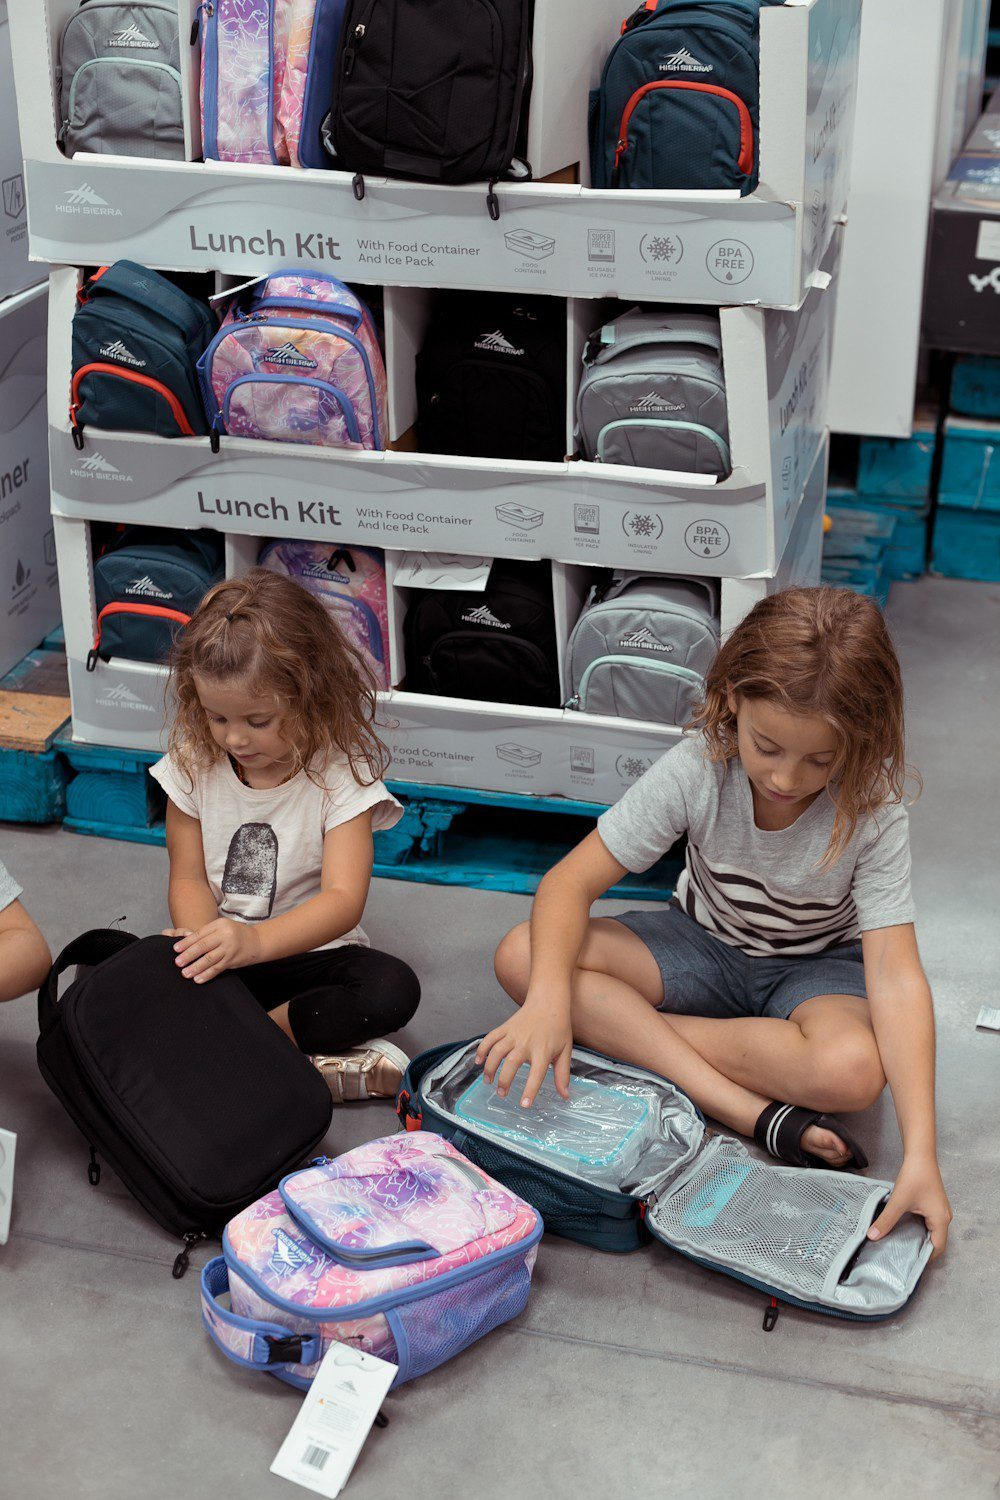 5 Sensational Strategies to Make Getting Ready for School Easy | How to Get Ready for School: 5 Sensational Strategies to Make Easy on your Family by popular Tampa life and style blog, Fresh Mommy: image of 2 young kids sitting in front of a backpack and lunch box display.